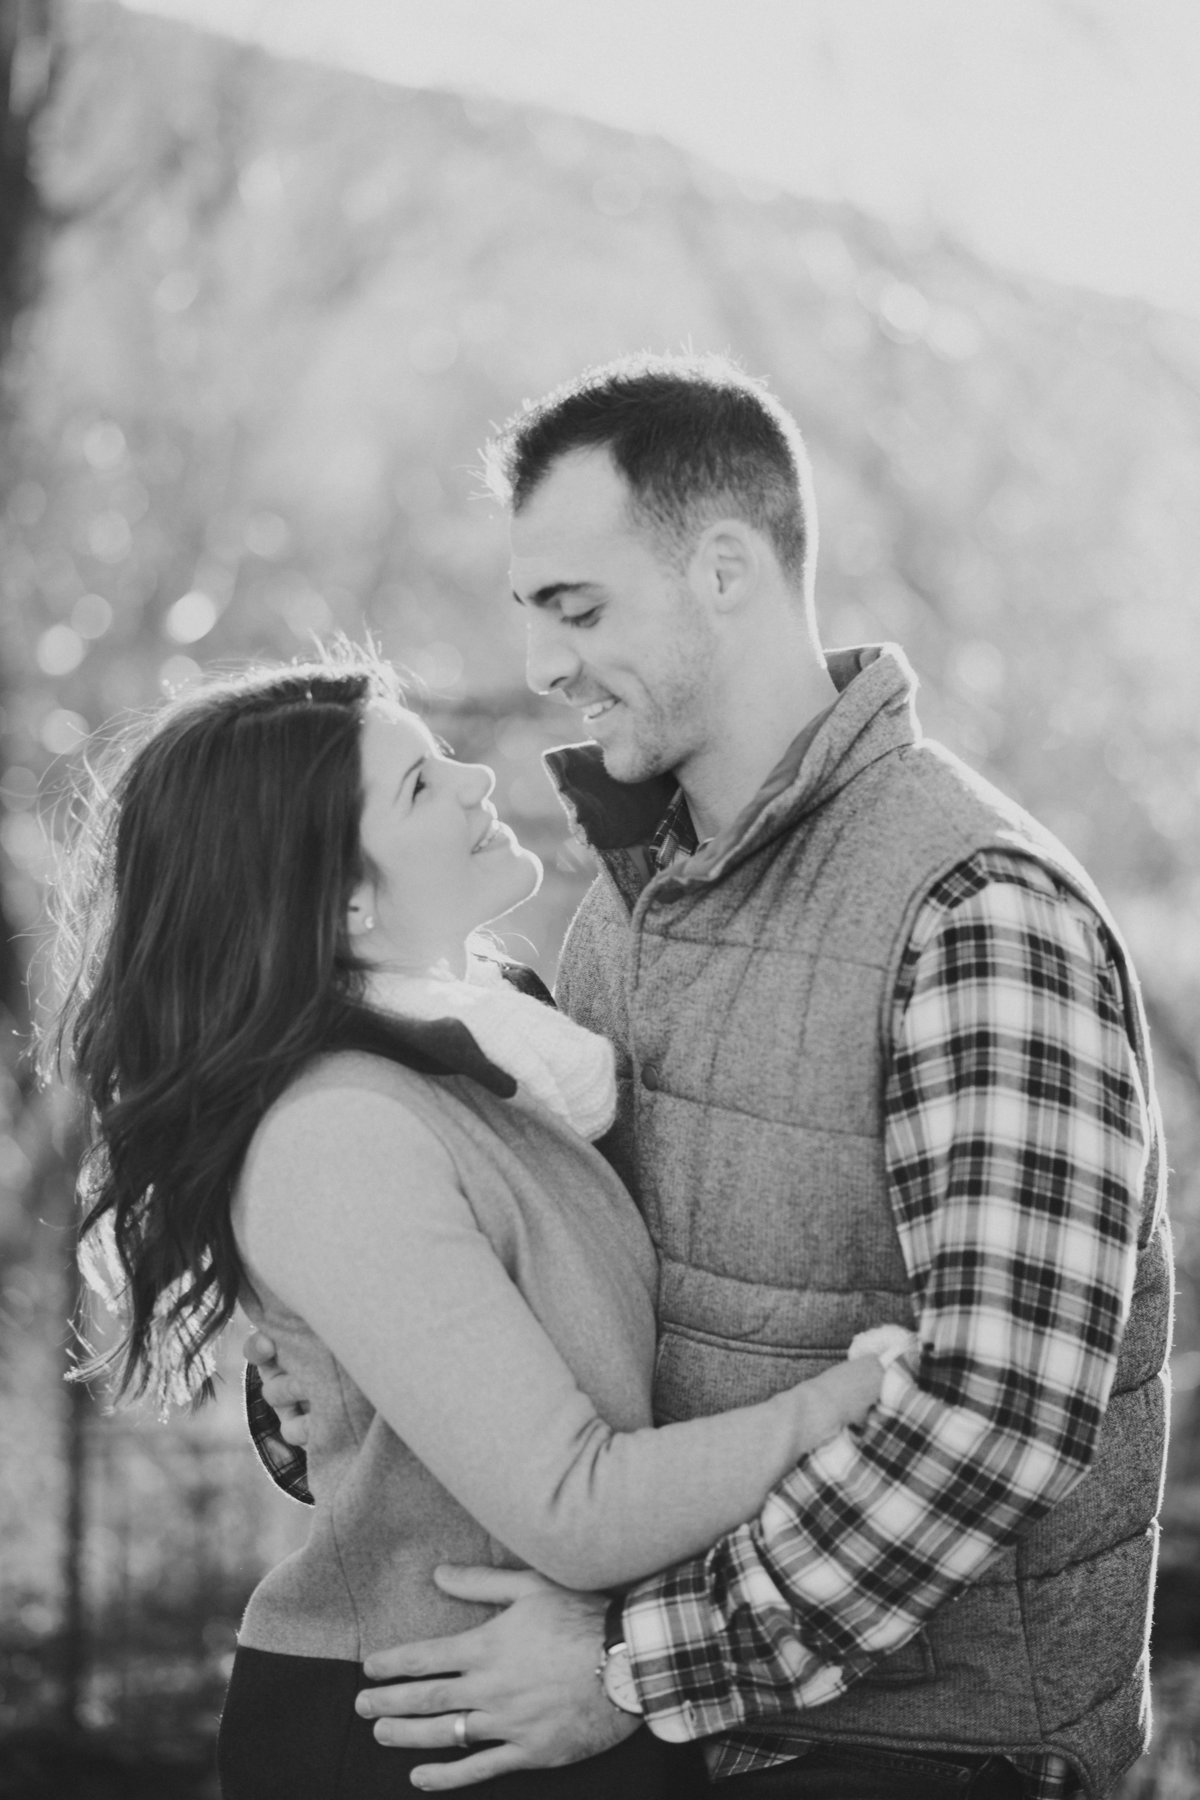 schenectady-scotia-couples-engagement-photography-lauren-kirkham-photography-4